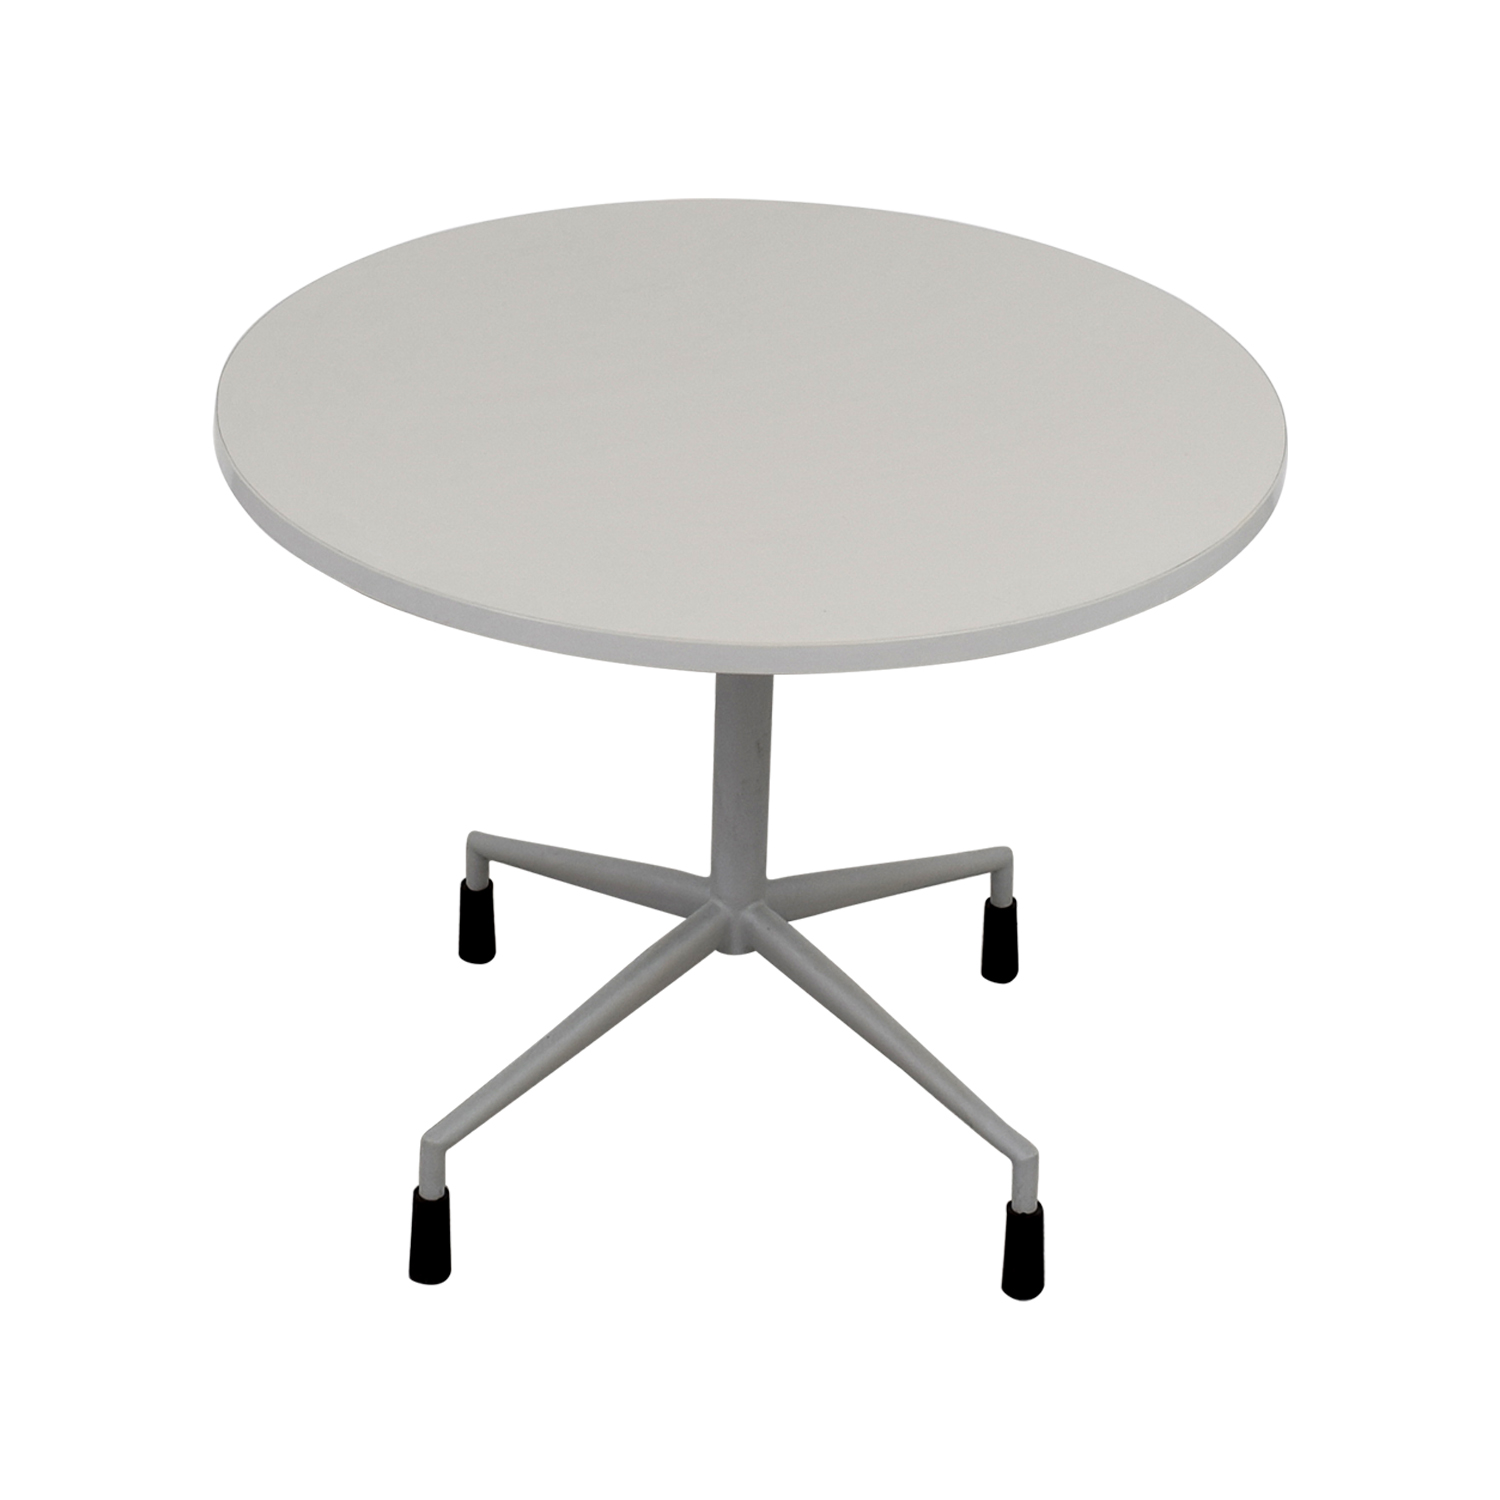 Buy White Round Table With Leg Base Online